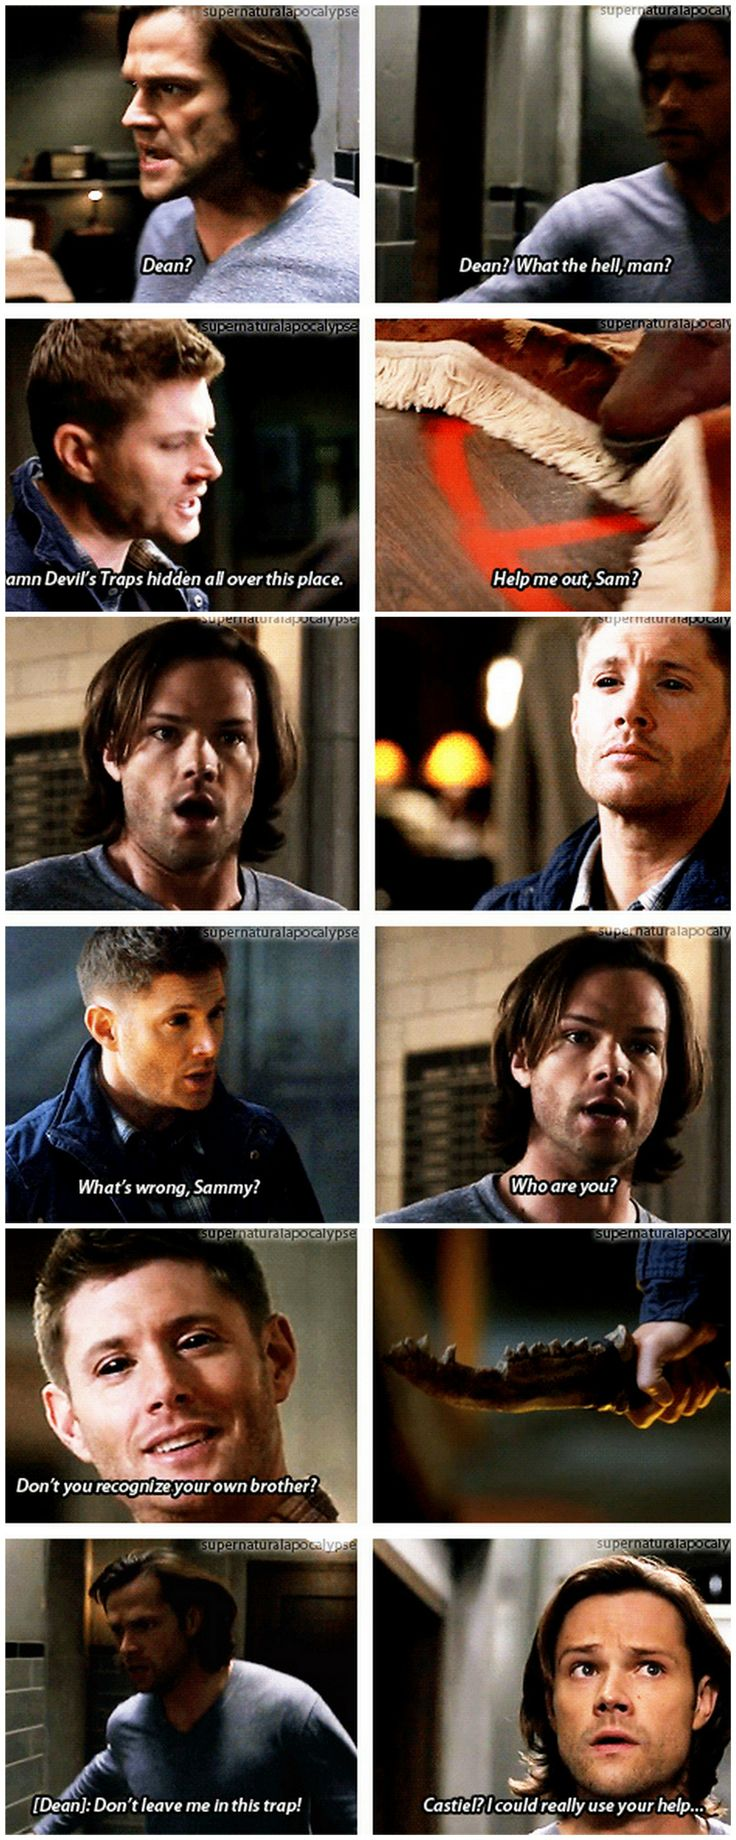 I think Dean is goin to TRY to hide it But Castiel will see his true form amd Dean will beg him not to tell sam